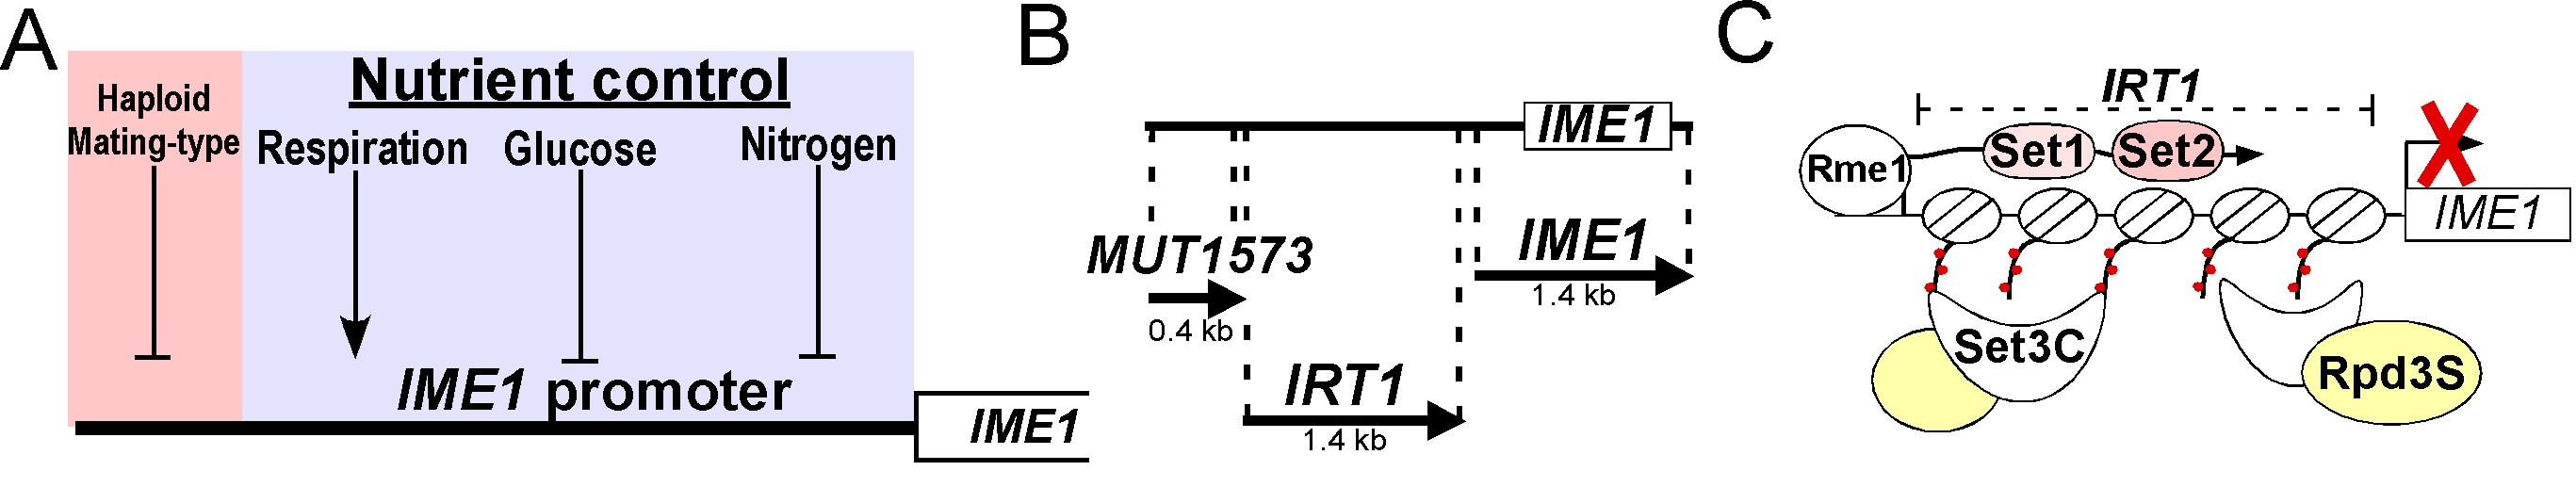 Figure 2. (A) Overview of the signals controlling the IME1 promoter. (B) Annotation of two ncRNAs in the IME1 promoter. (C) Model describing the mechanism by which the lncRNA IRT1 represses IME1.